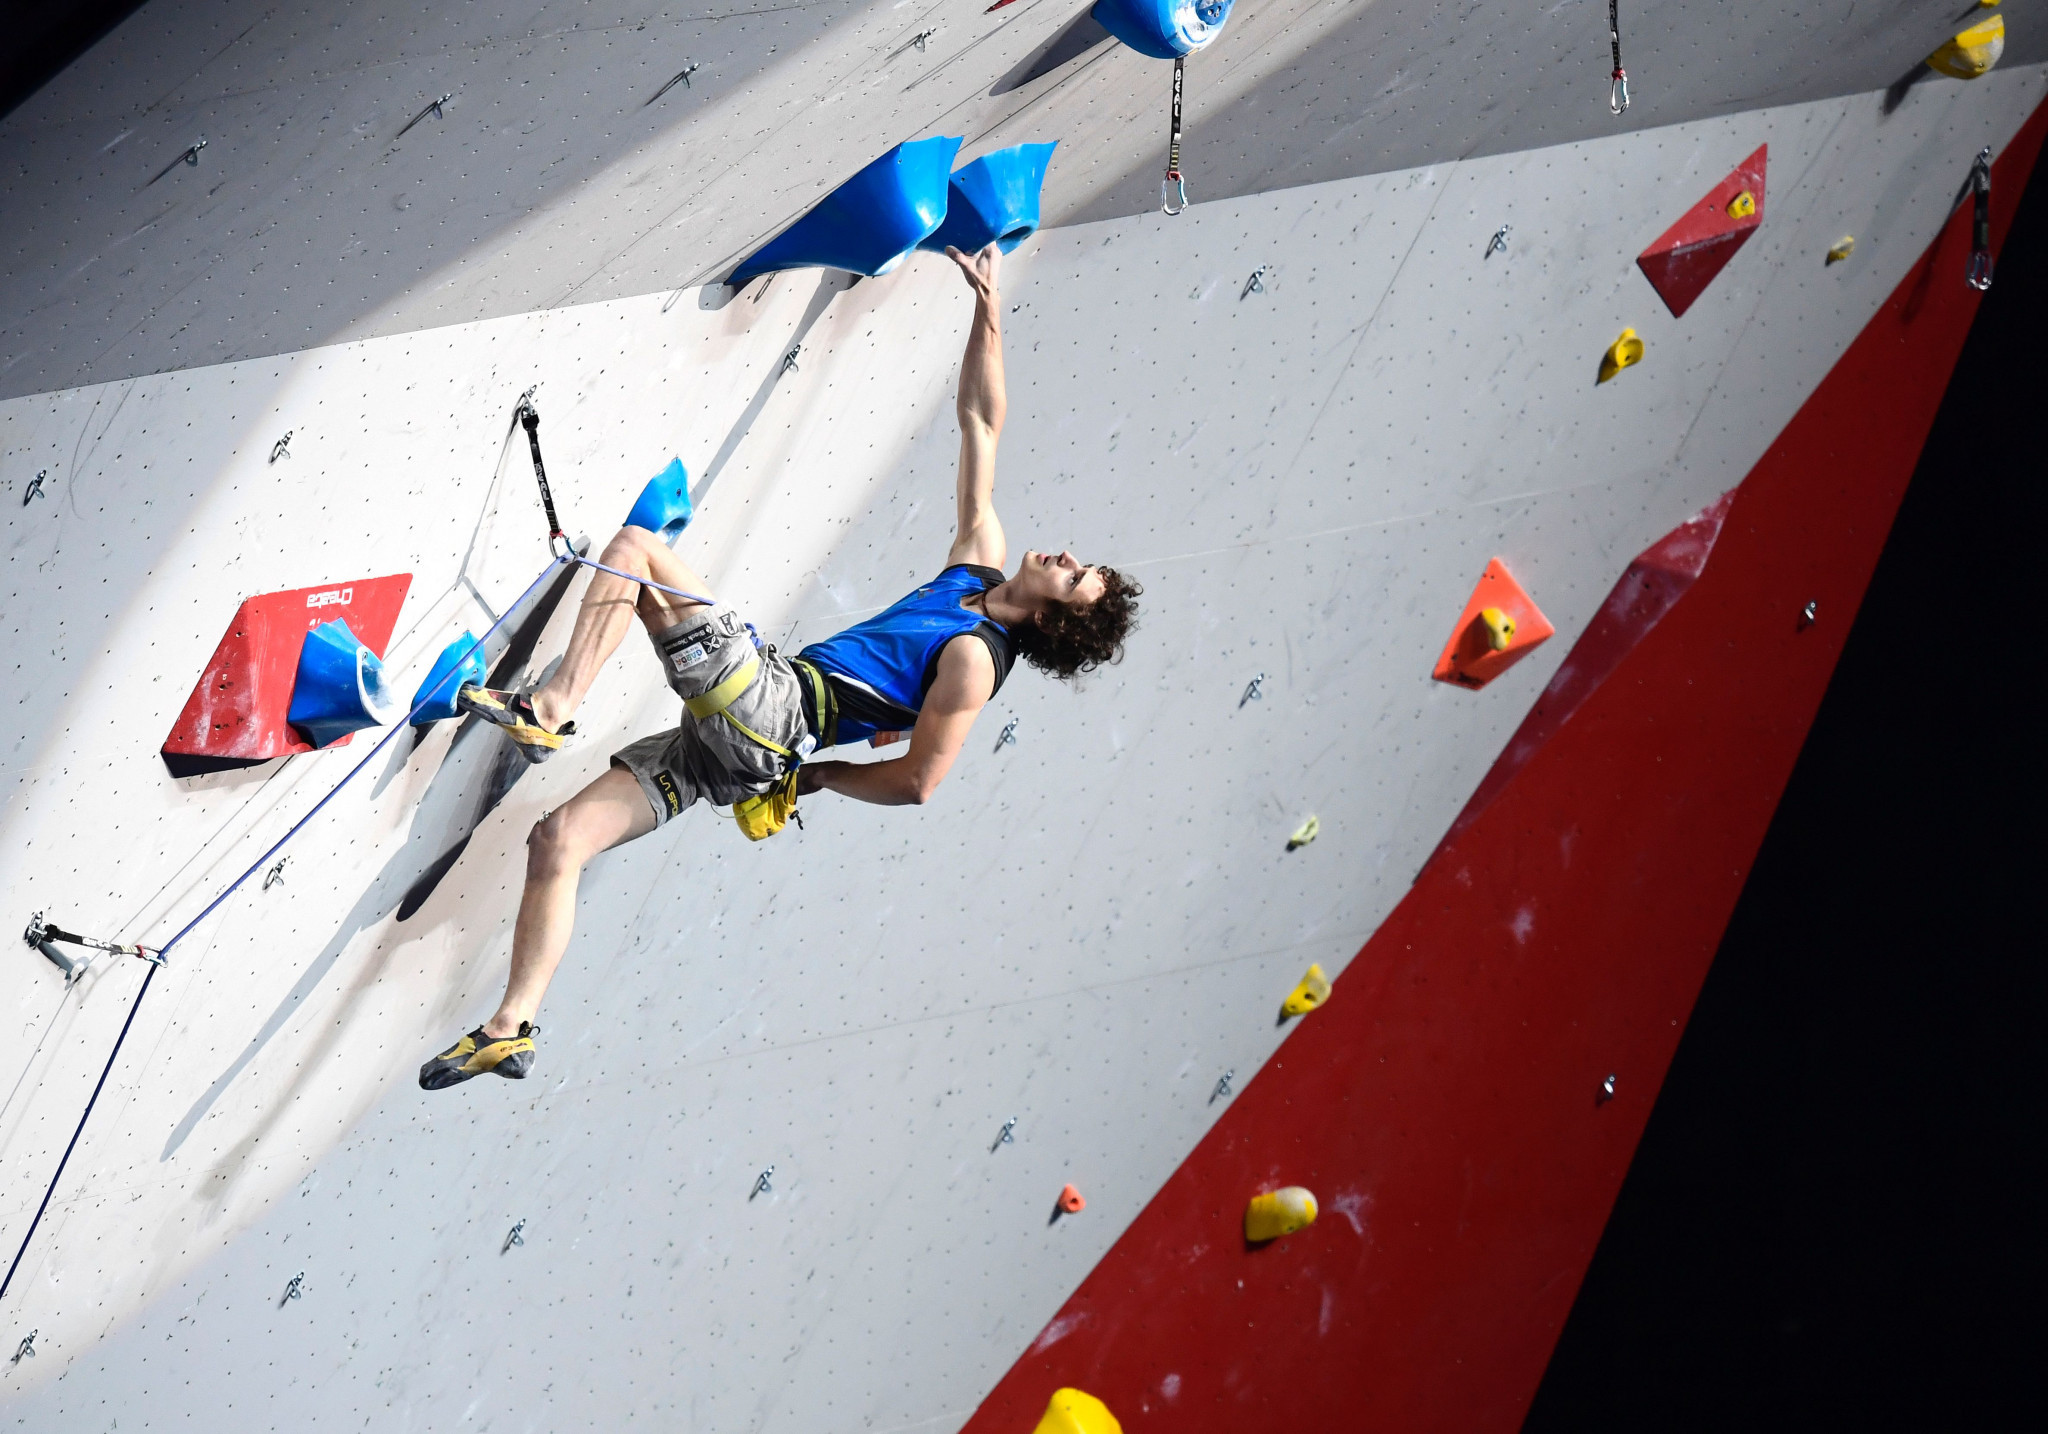 Czech Republic's Adam Ondra will seek to become the first athlete in recent IFSC history to win three consecutive lead world titles when he competes in Innsbruck ©Getty Images